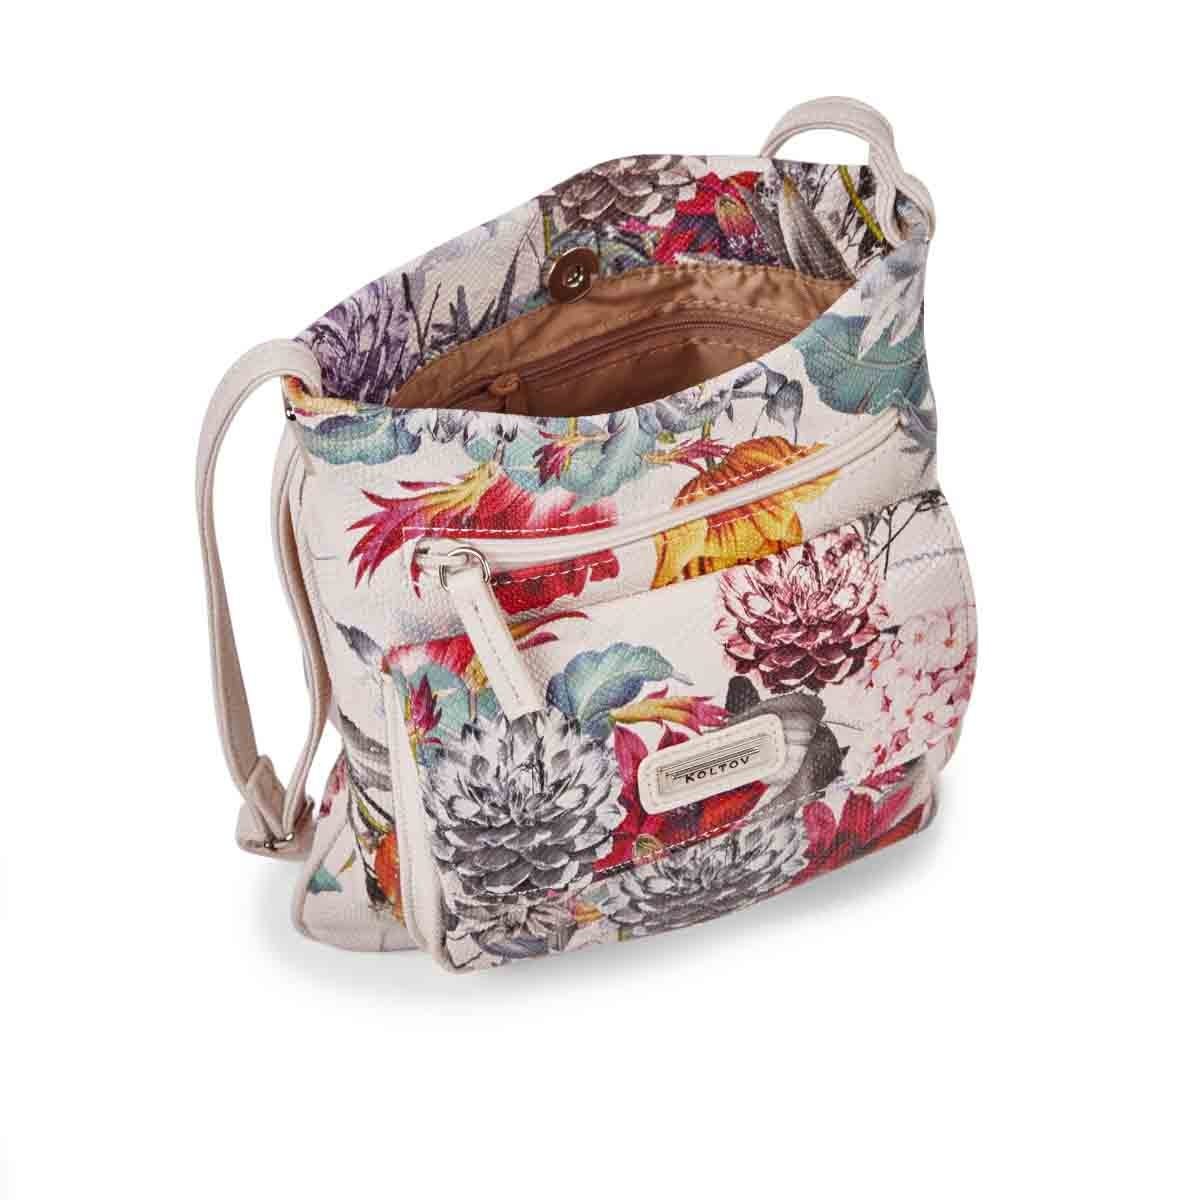 Lds Harper floral multi cross body bag